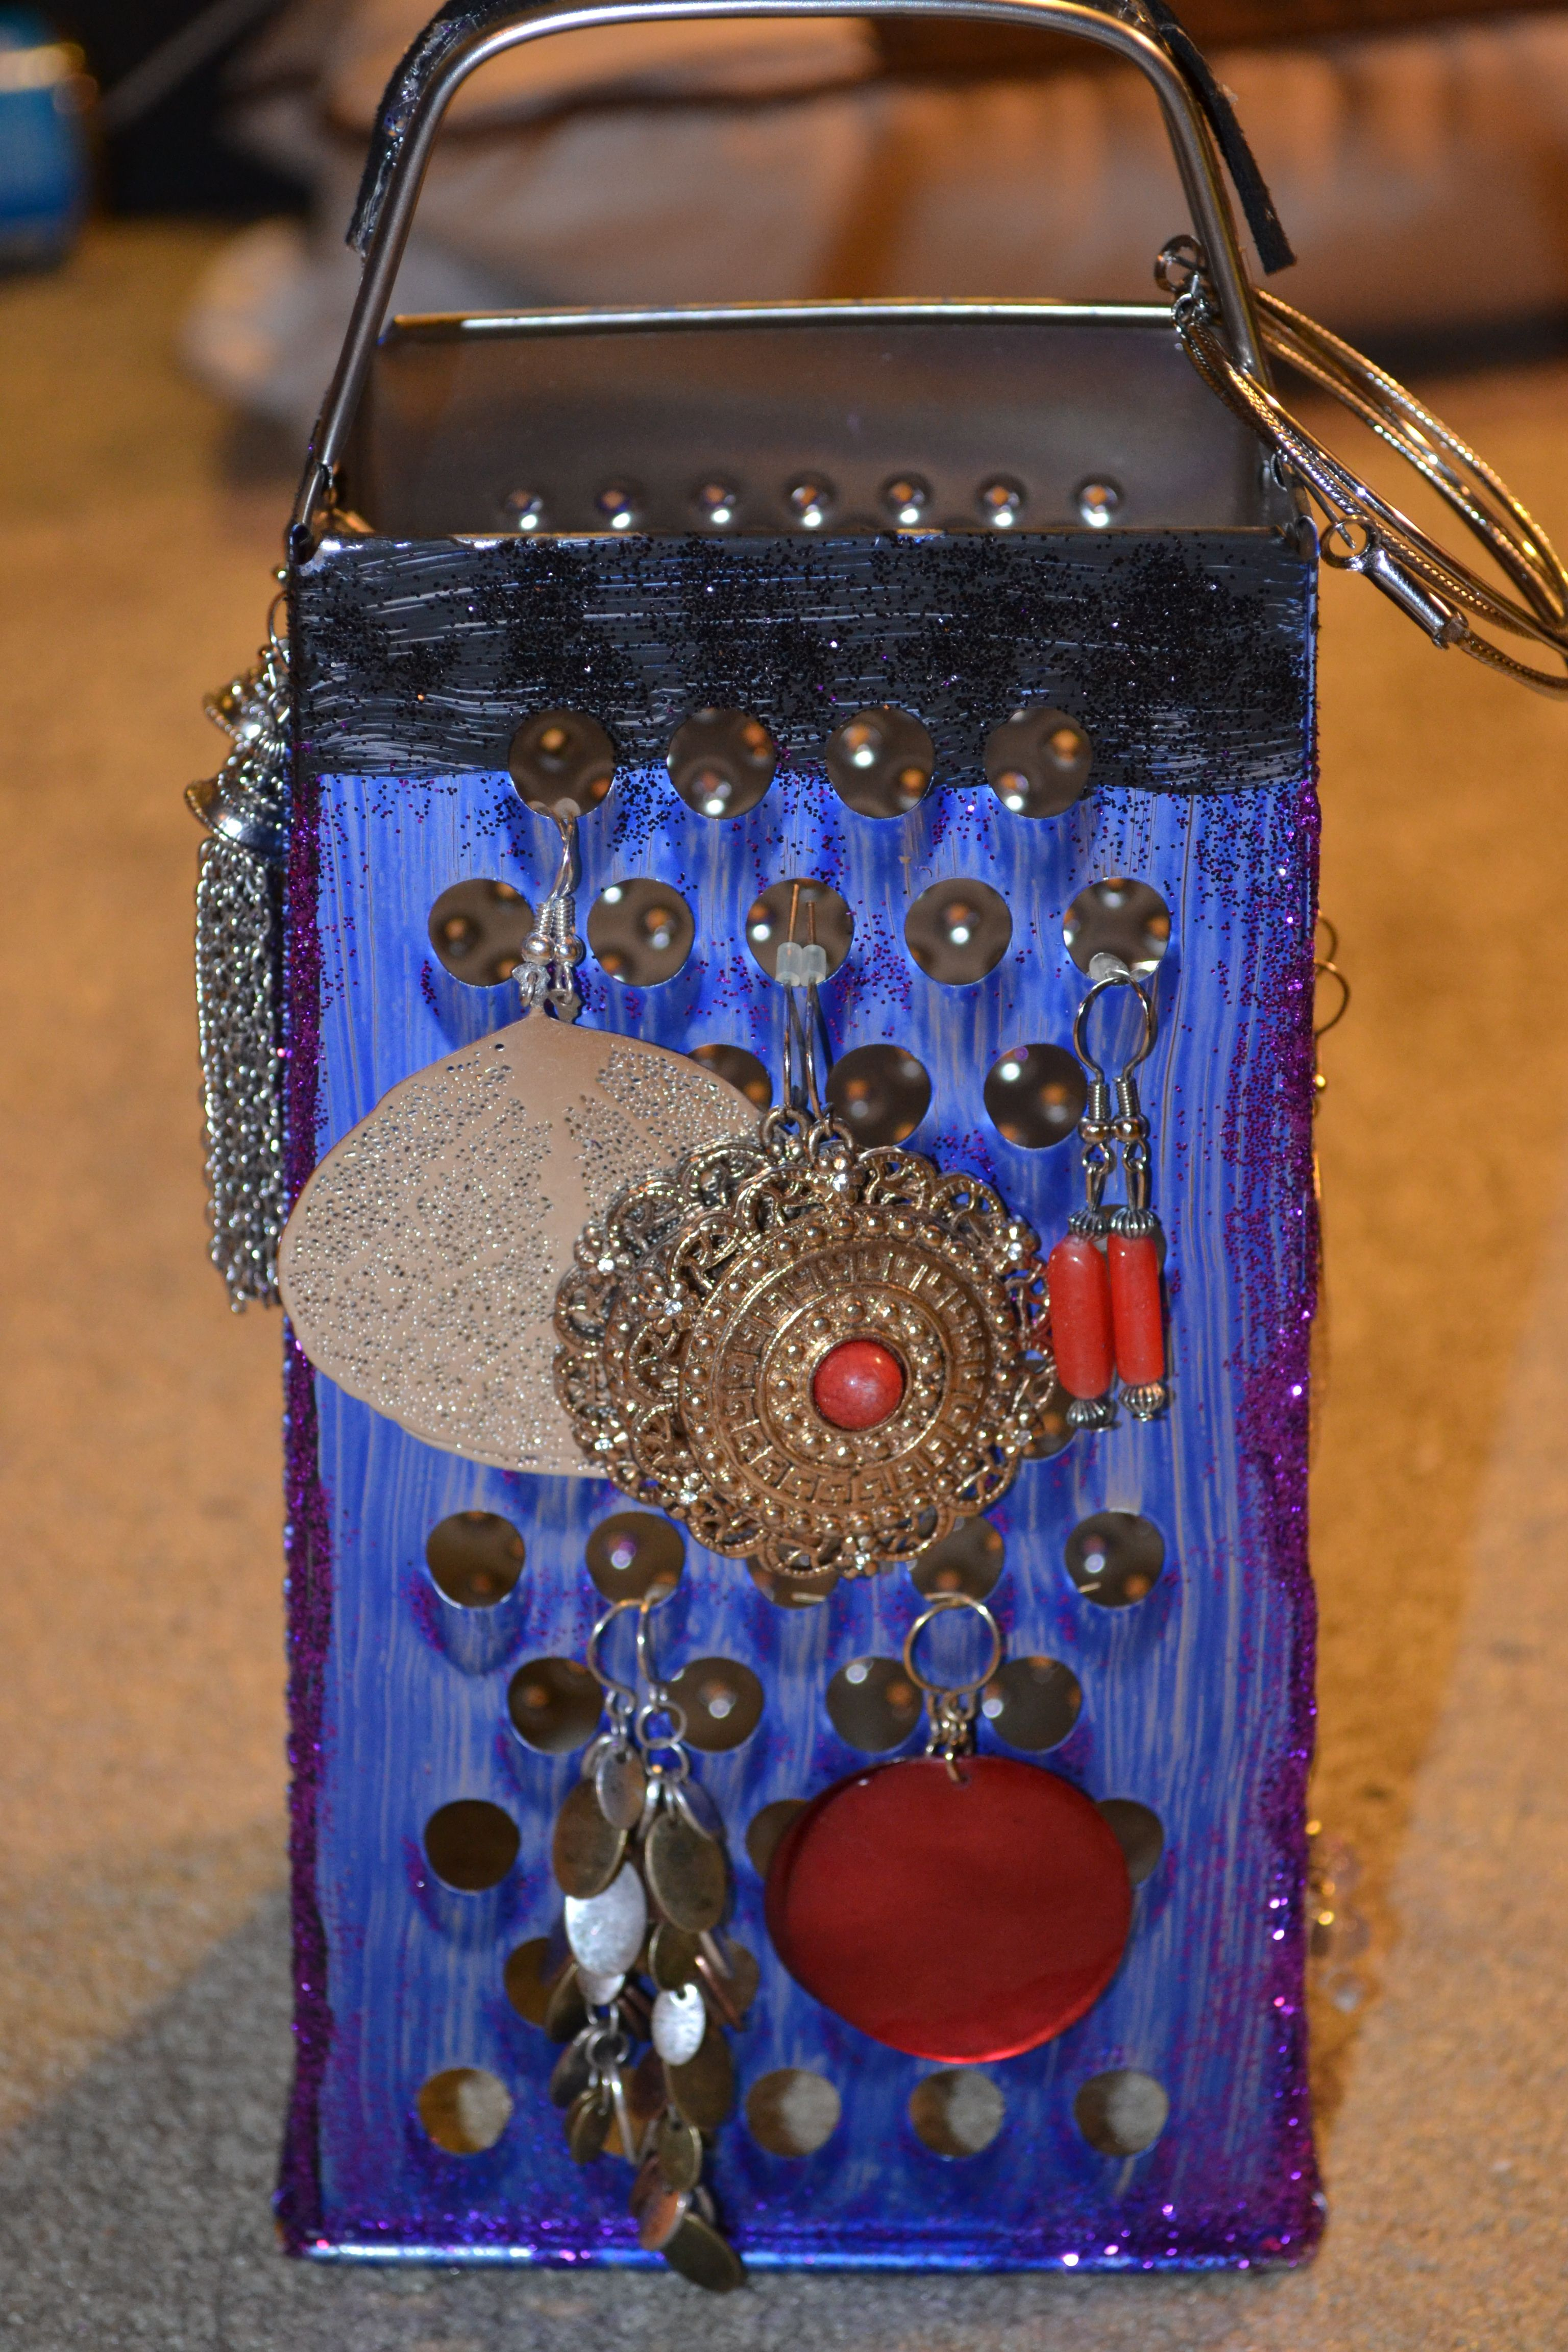 earing holder made out of a cheese grater